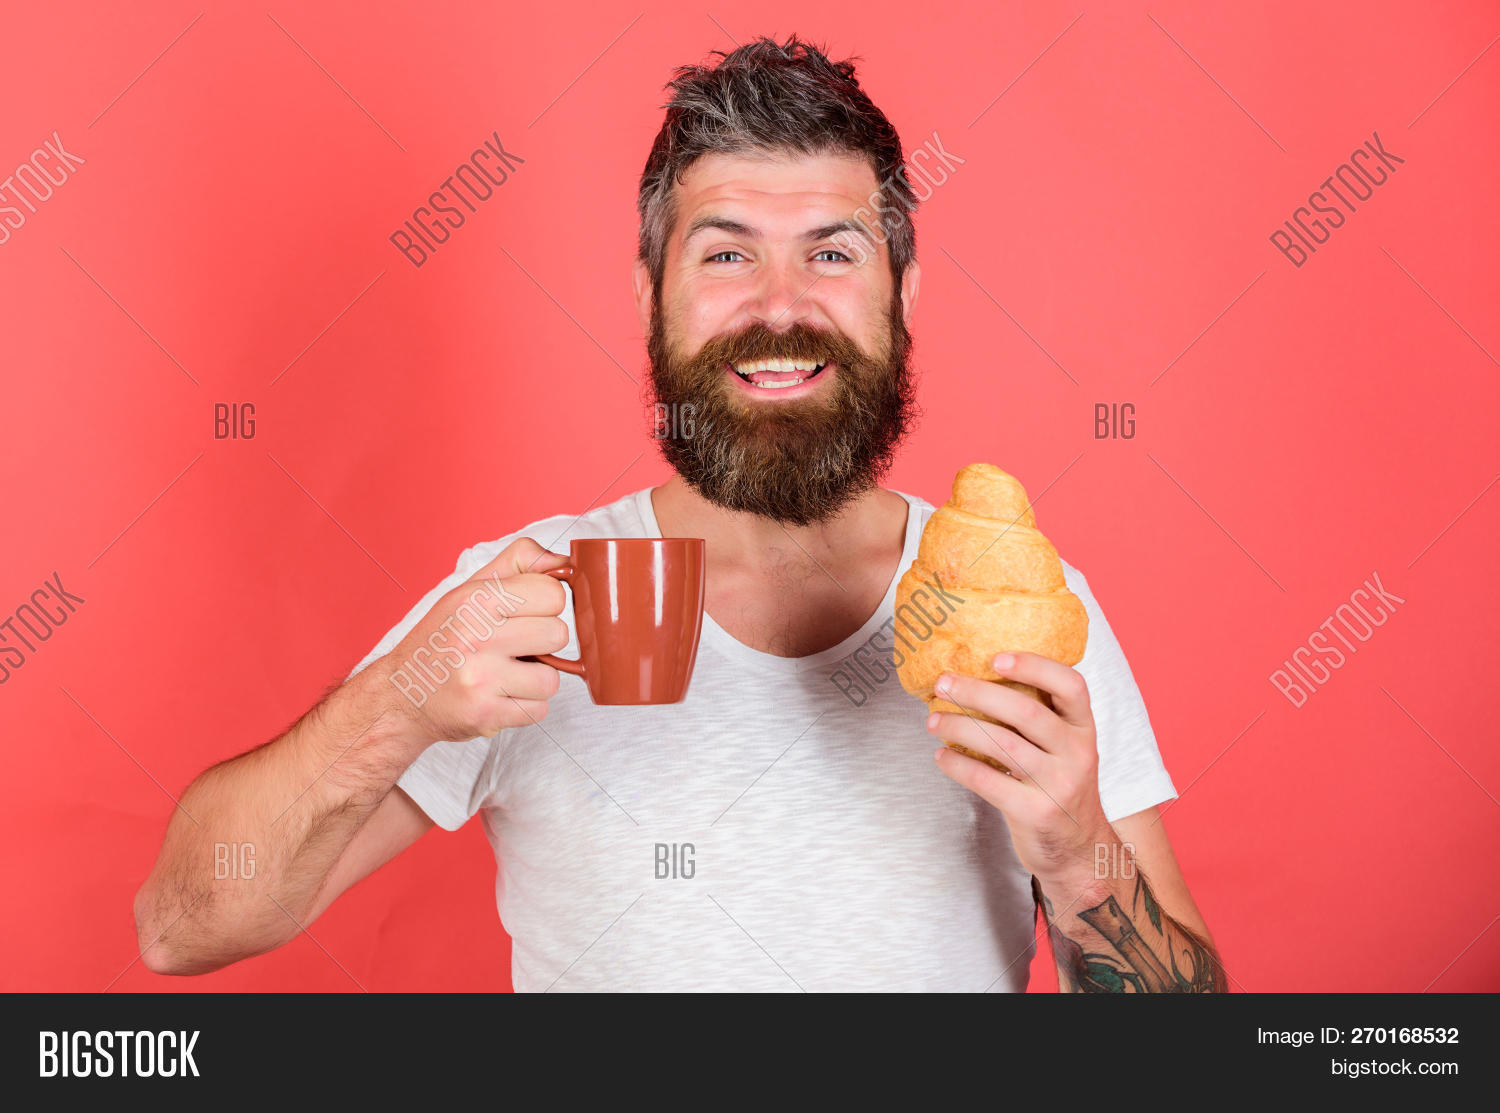 adult,attractive,background,beard,bearded,beginning,beverage,breakfast,caucasian,coffee,concept,croissant,cup,day,diet,dieting,drink,eat,enjoy,every,face,first,food,fresh,gastronomic,guy,handsome,happy,health,healthy,hipster,hold,macho,man,morning,mug,mustache,nutrition,pleasant,pleasure,red,relax,sip,start,tea,tradition,unshaven